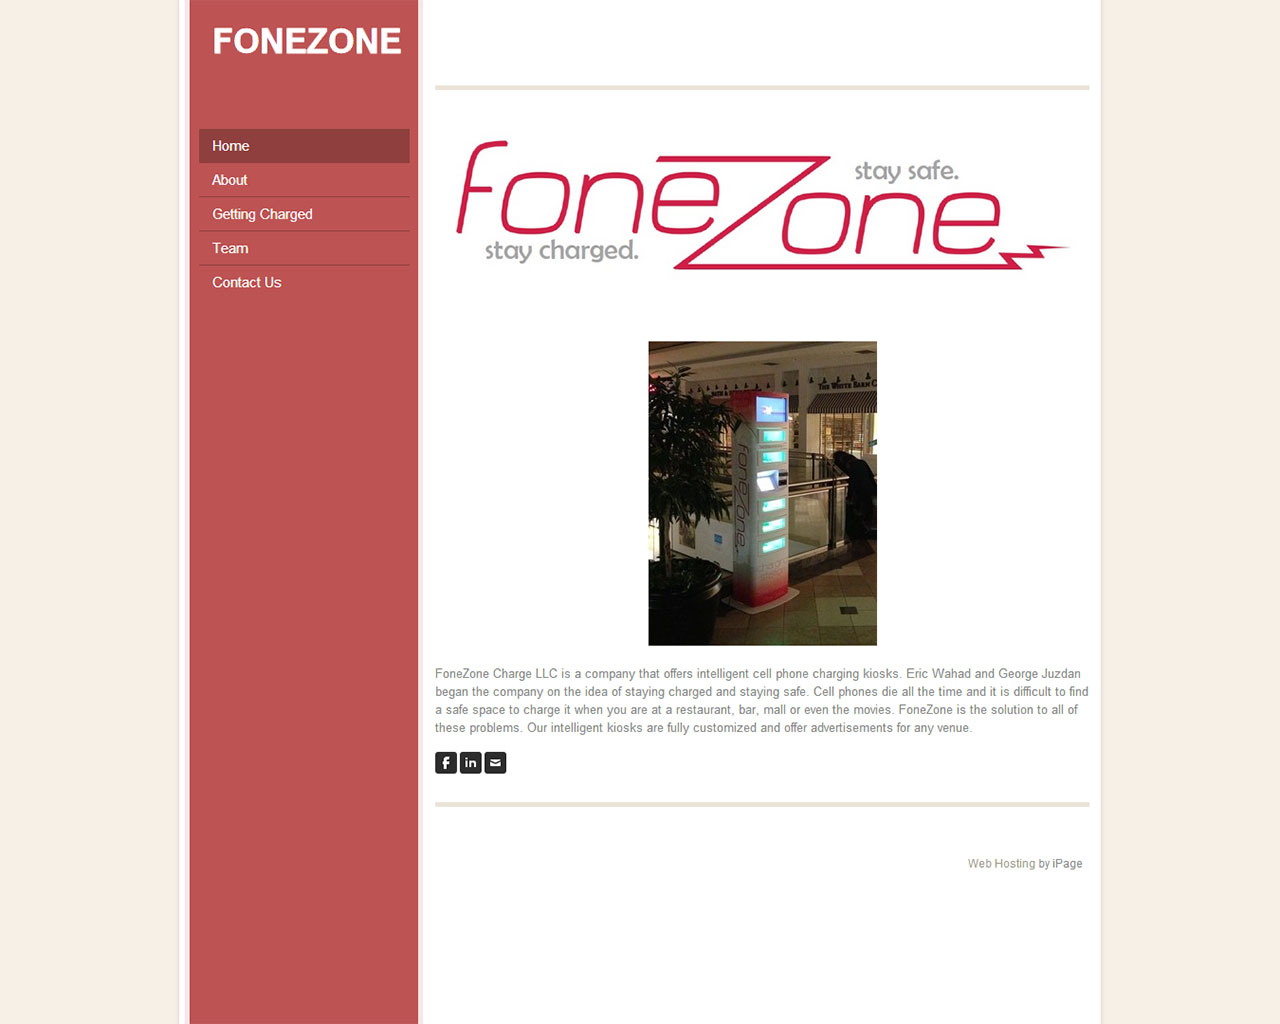 fone-zone-charge-before